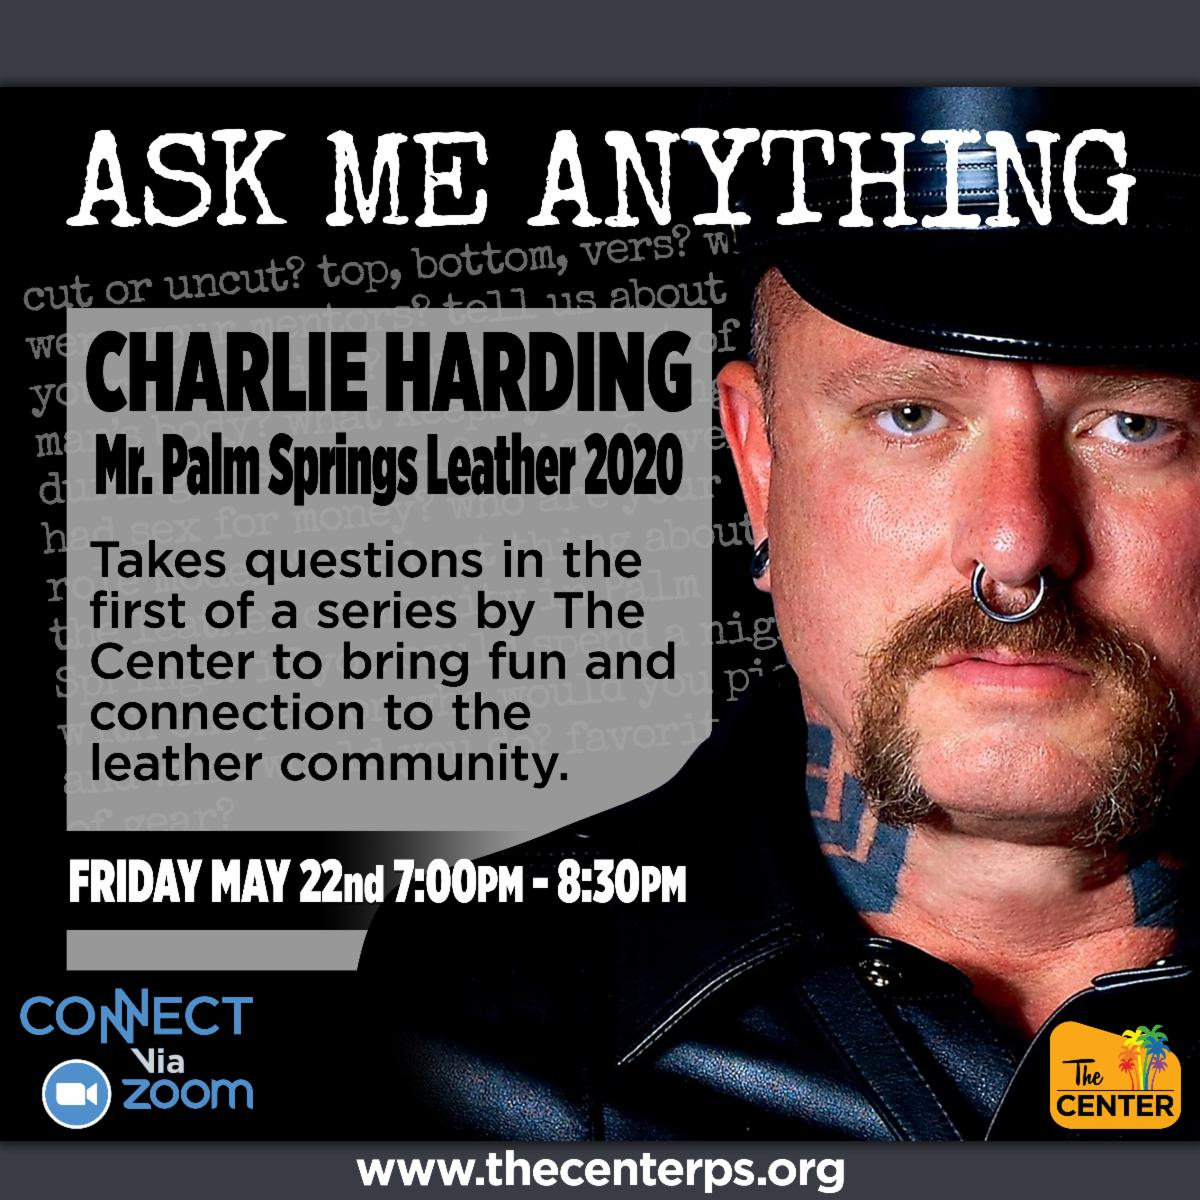 Ask me Anything with Mr Palm Springs Leather 2020 - Friday May 22 7PM